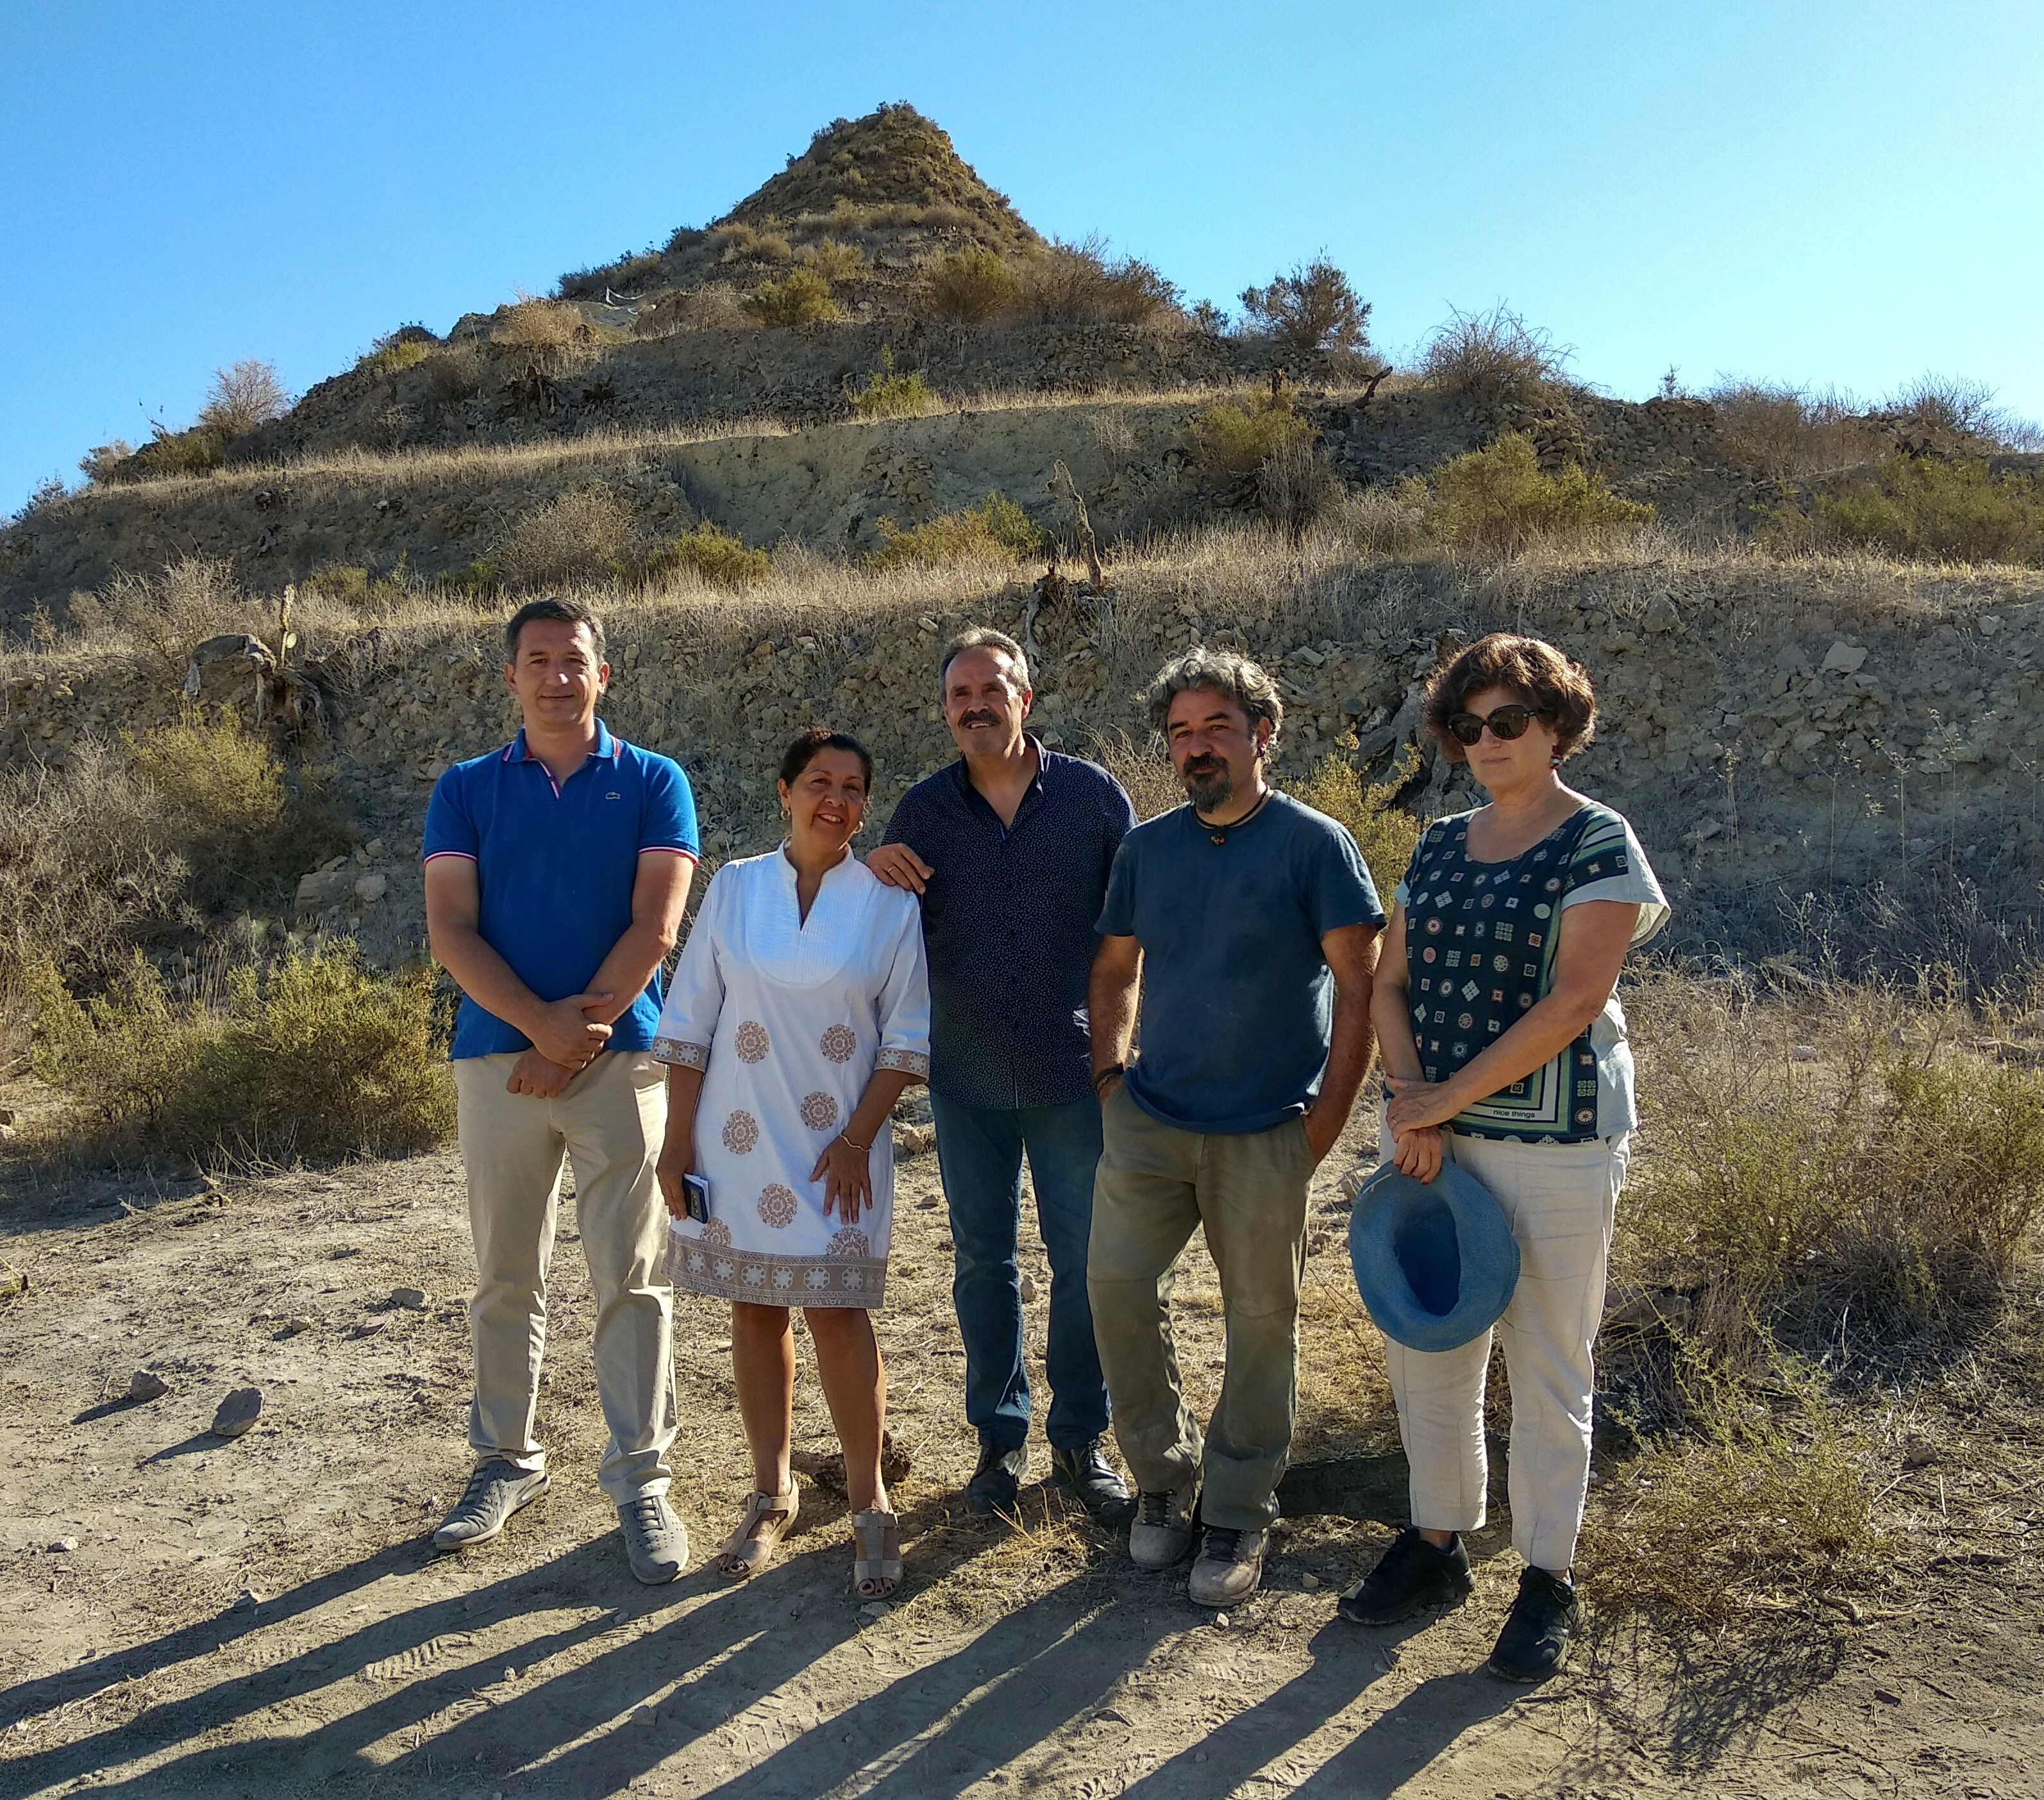 Almería´s Culture, Tourism and Sports Director from the Junta de Andalucía, Alfredo Valdivia Ayala, together with Ángela Suarez, Department Head of Museums and Culture, visited the excavations that the University of Granada and the Biocultural Archaeology Laboratories have been busy working on at Mojácar la Vieja.